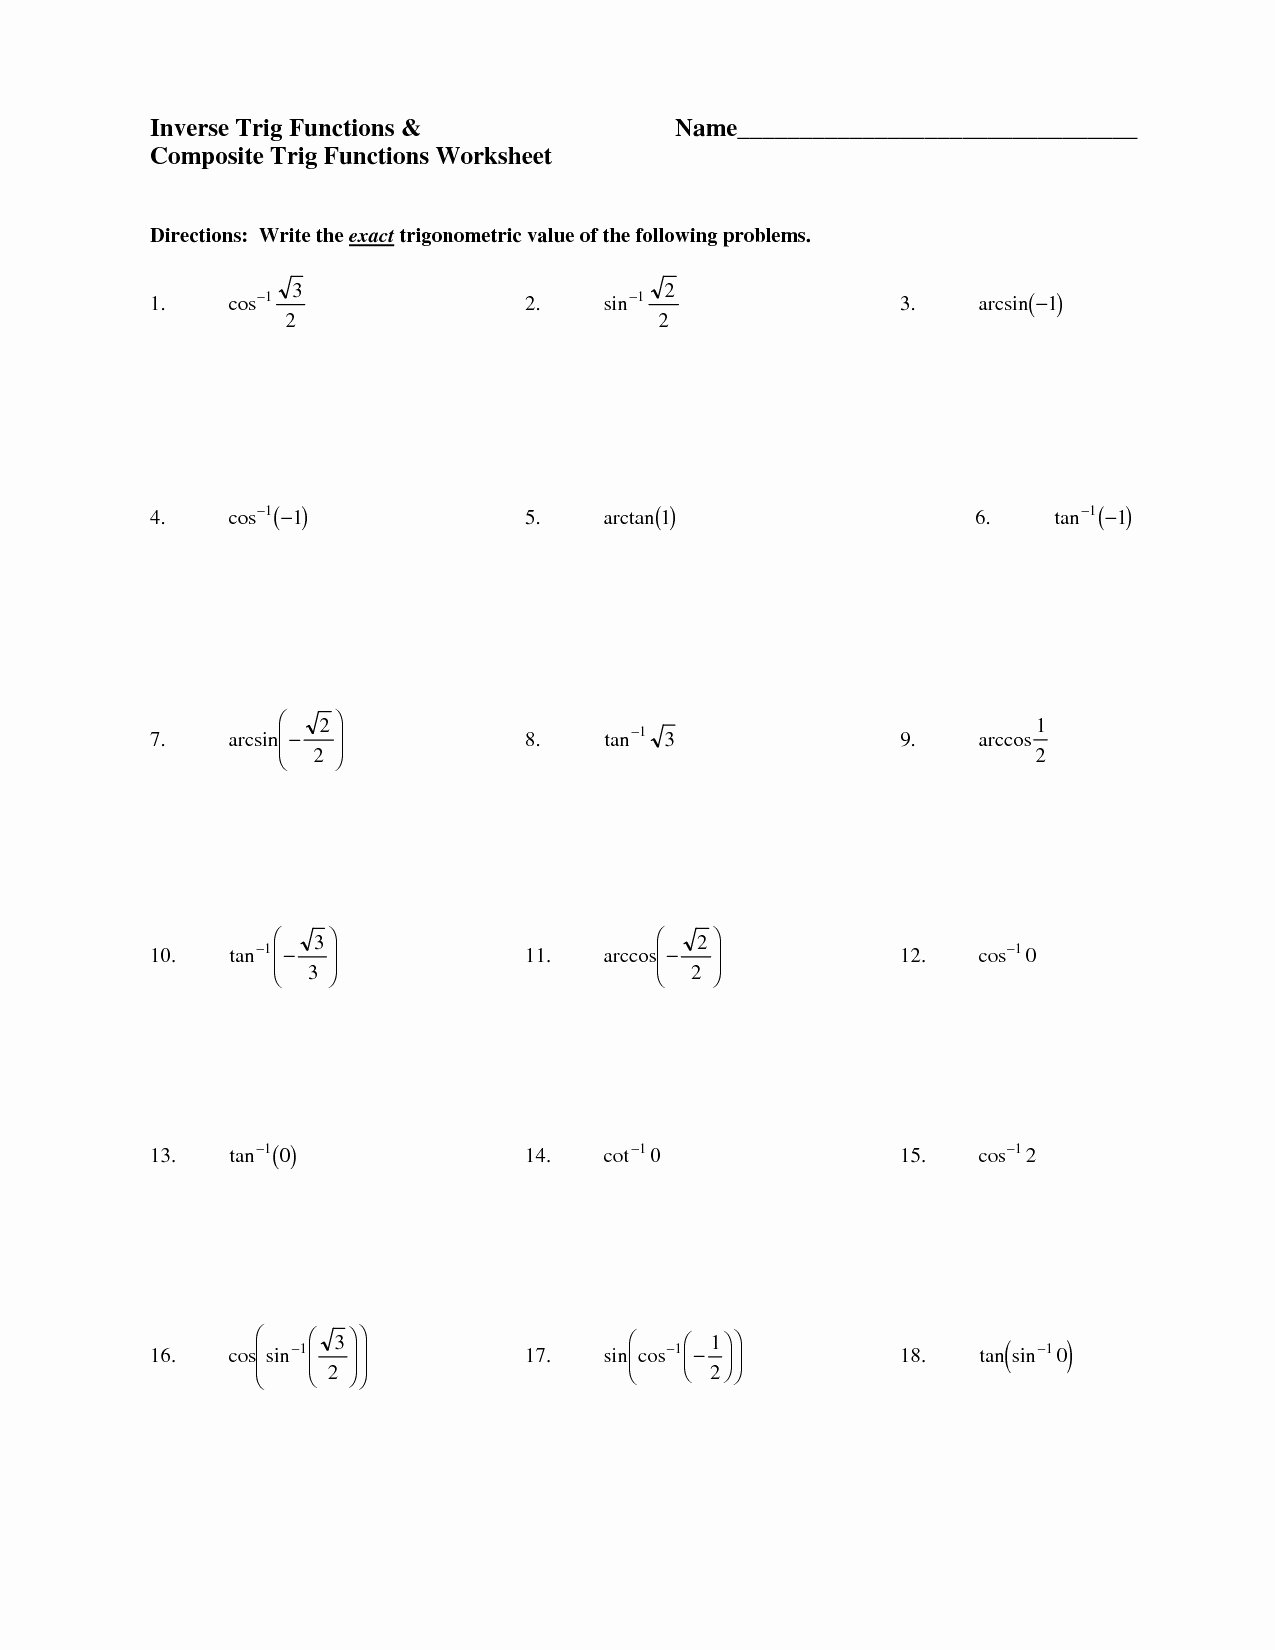 Inverse Functions Worksheet with Answers Printable Position and Inverse Function Worksheet